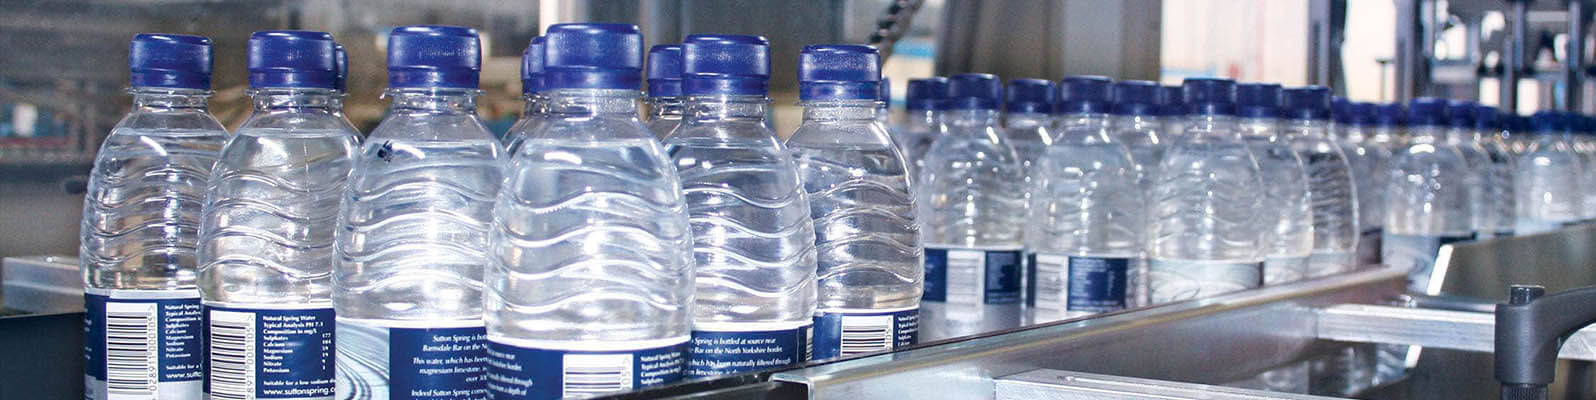 12 pack of water bottles getting poly bundled